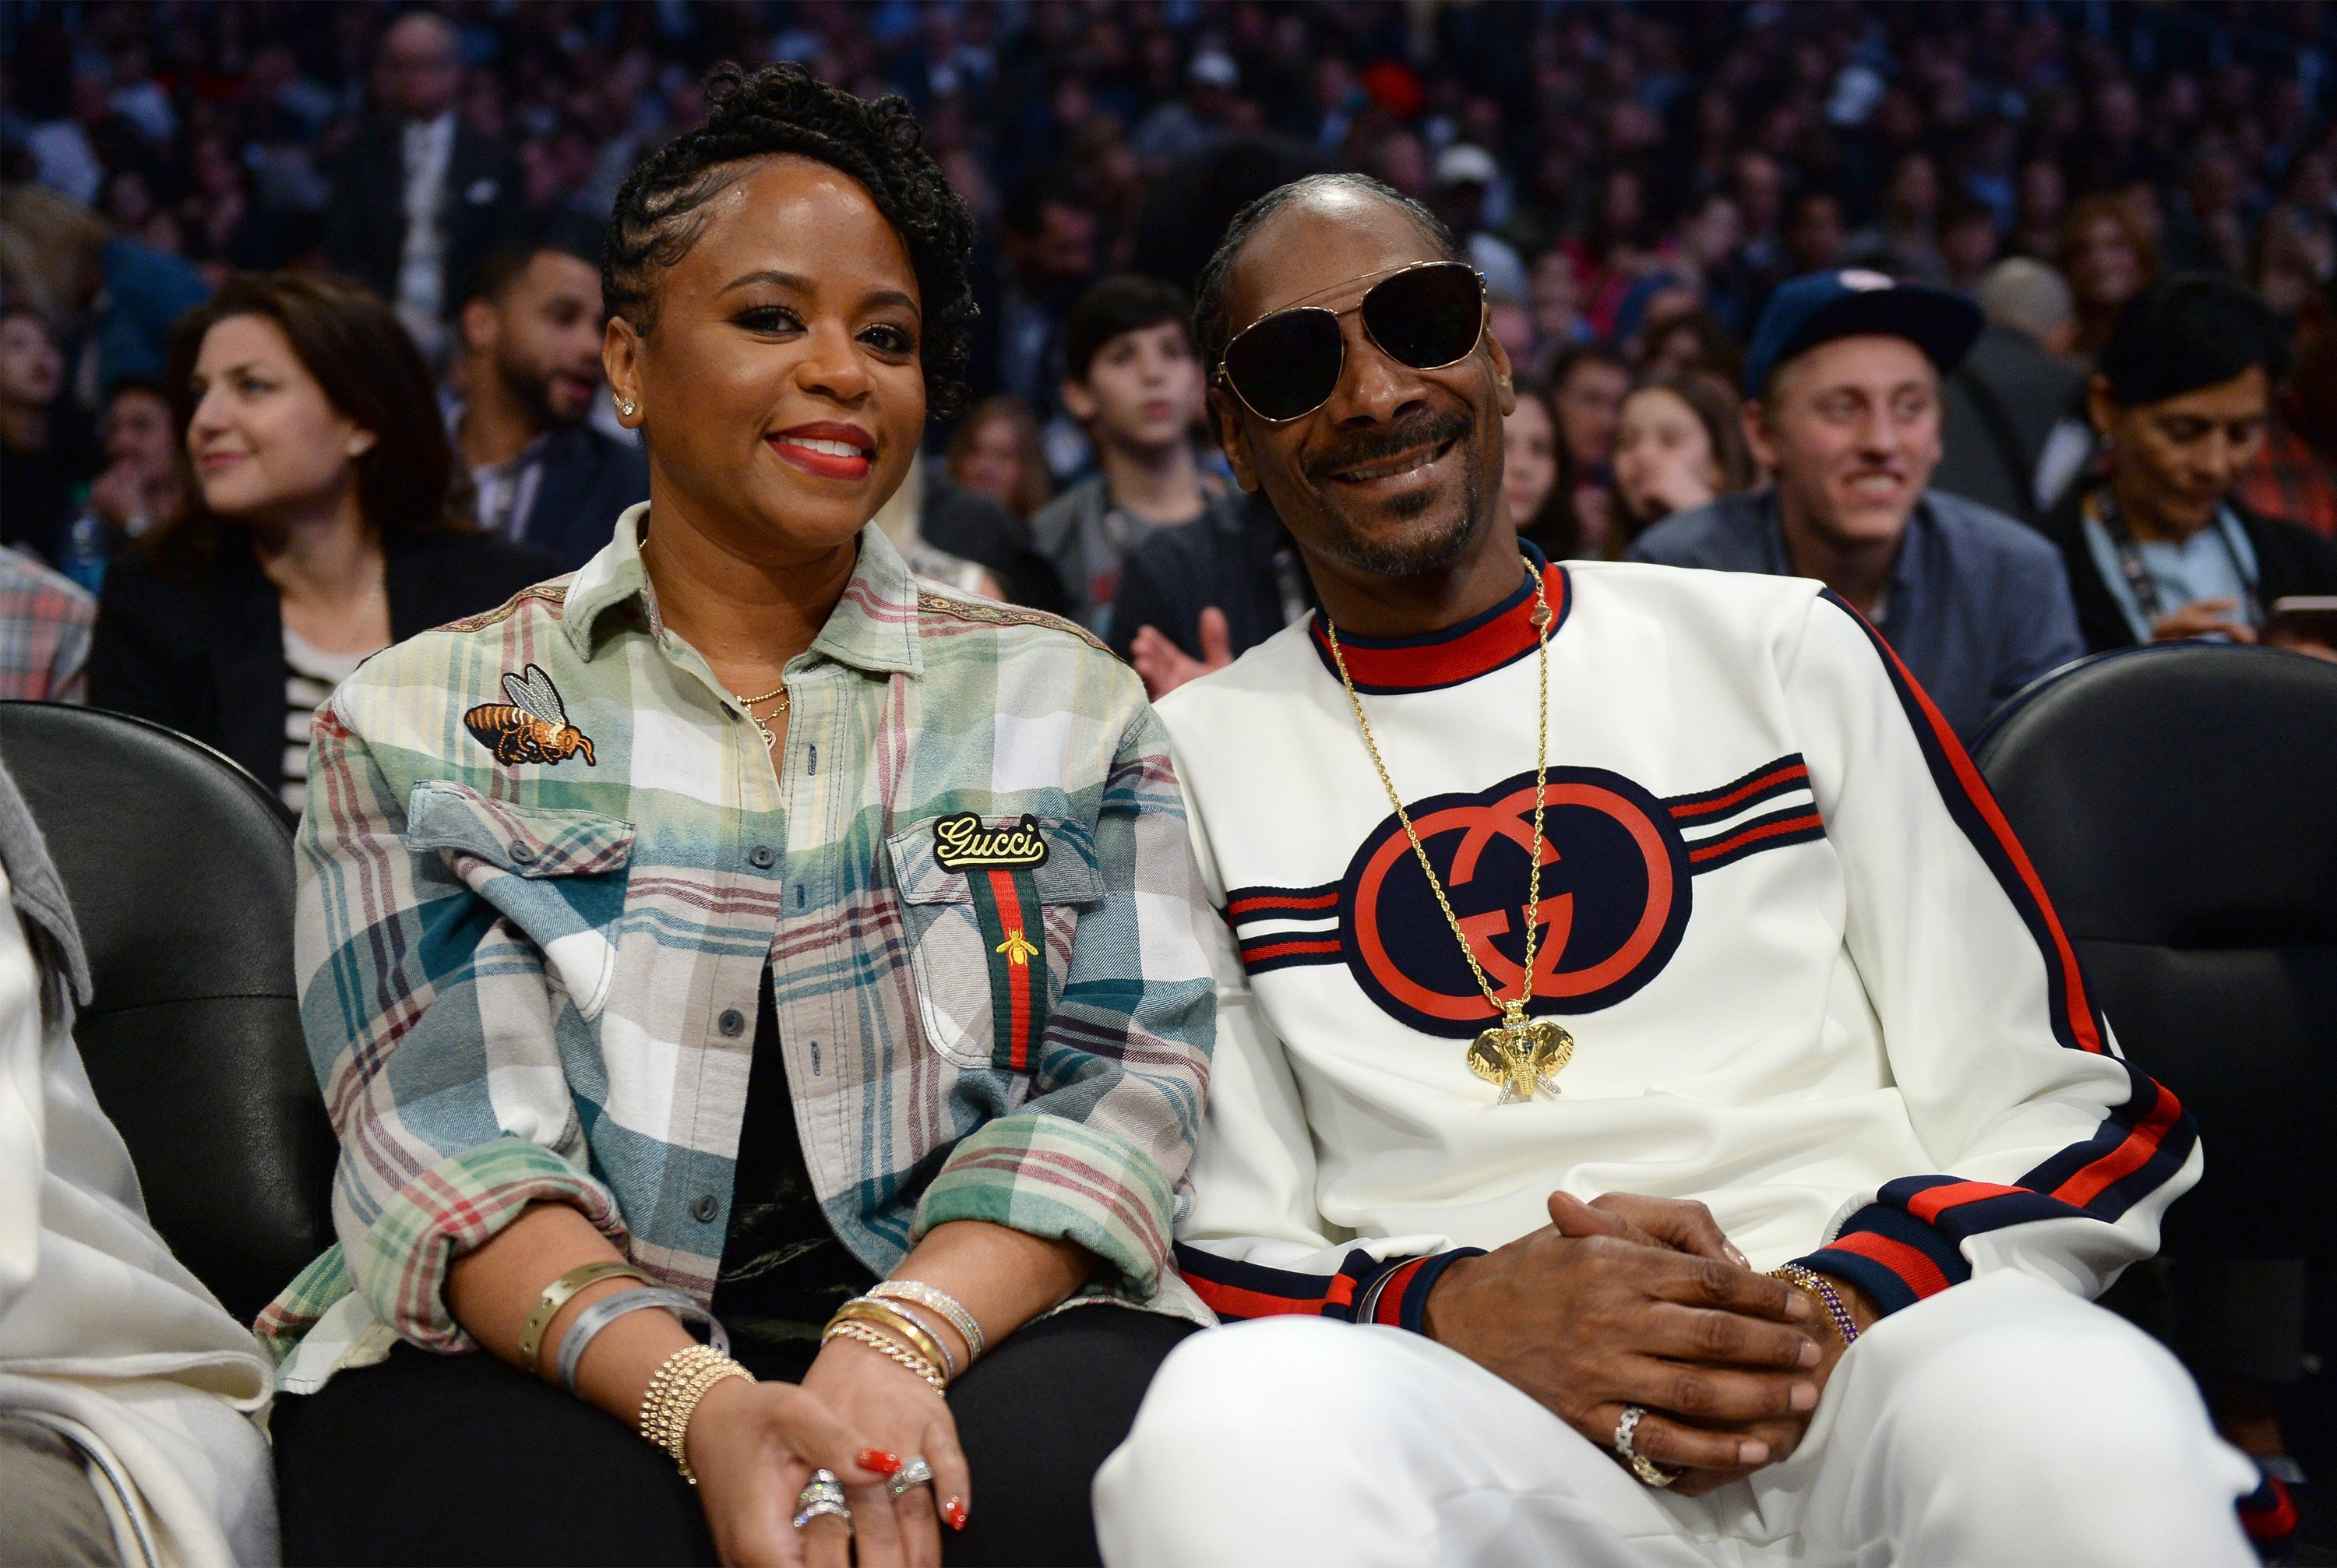 Snoop Dogg and wife Shante at the NBA All-Star Game on Feb. 18, 2018 in California | Photo: Getty Images